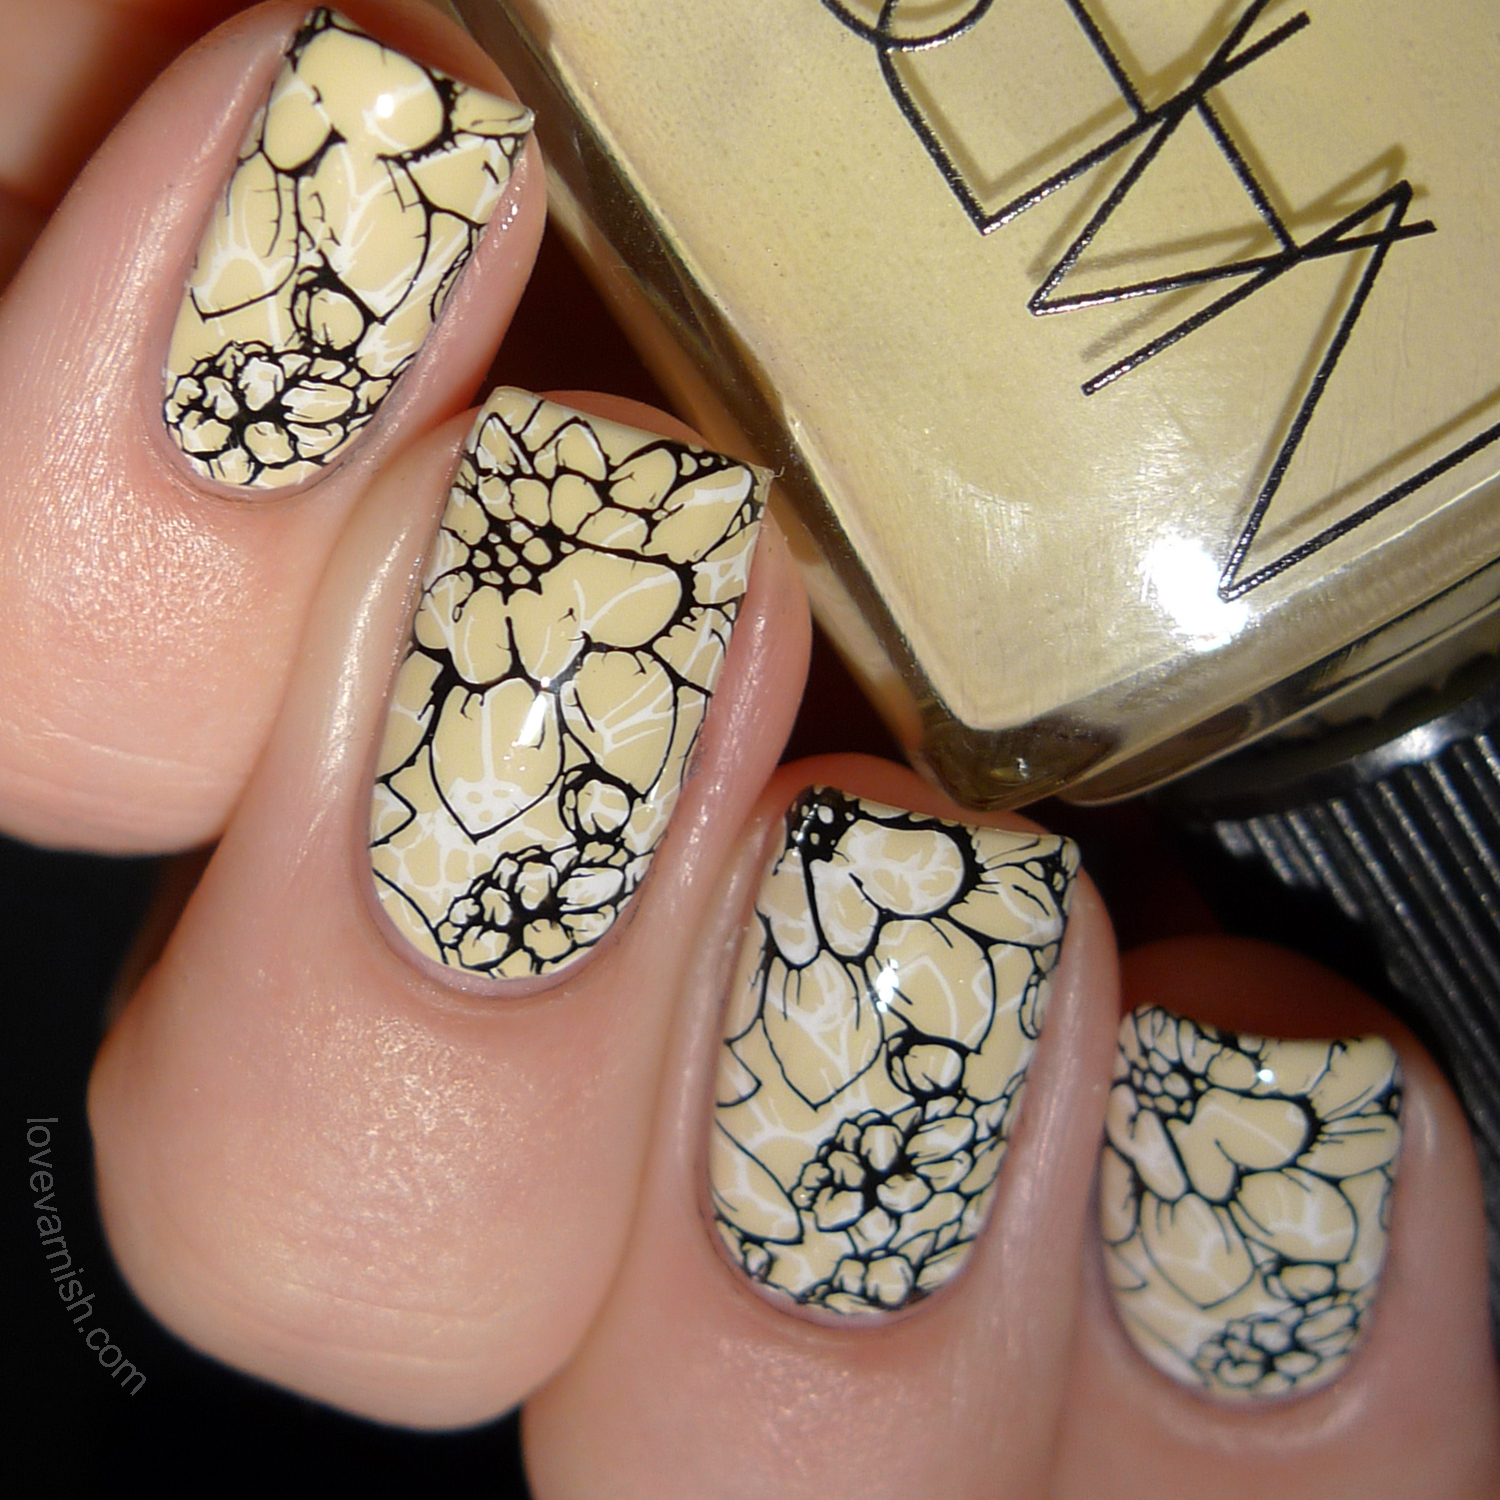 NARS Anarchy double stamping nail art MoYou London